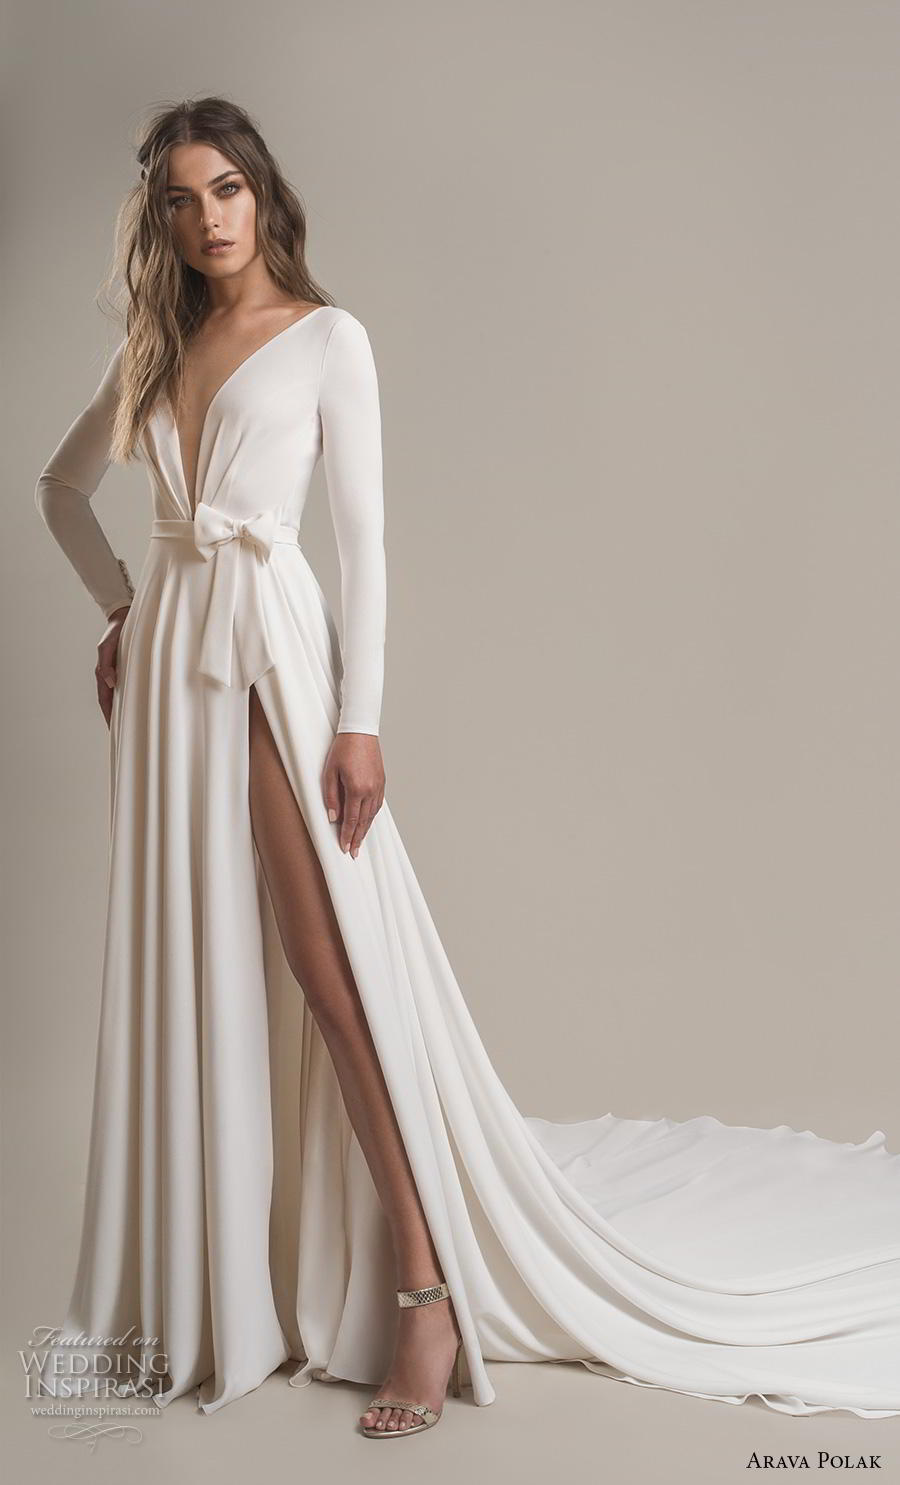 arava polak 2019 bridal long sleeves deep v neck simple minimalist slit skirt sexy modern a  line wedding dress backless low v back chapel train (2) mv